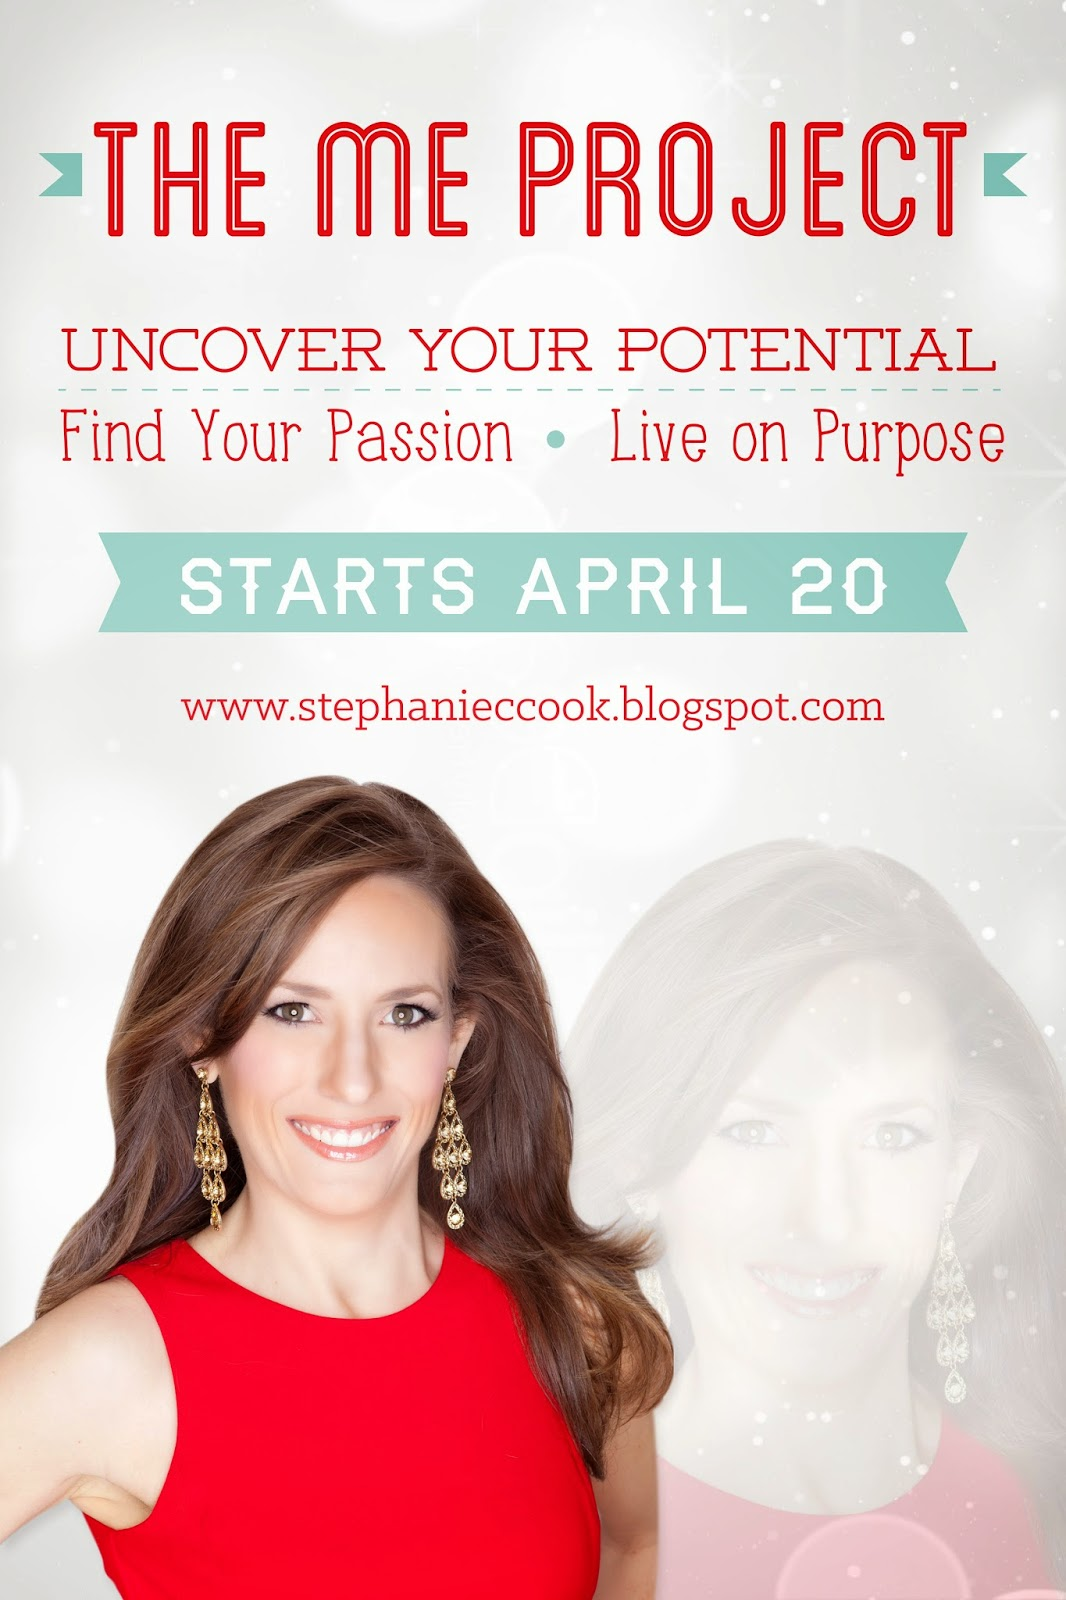 find your passion, uncover your potential, live on purpose